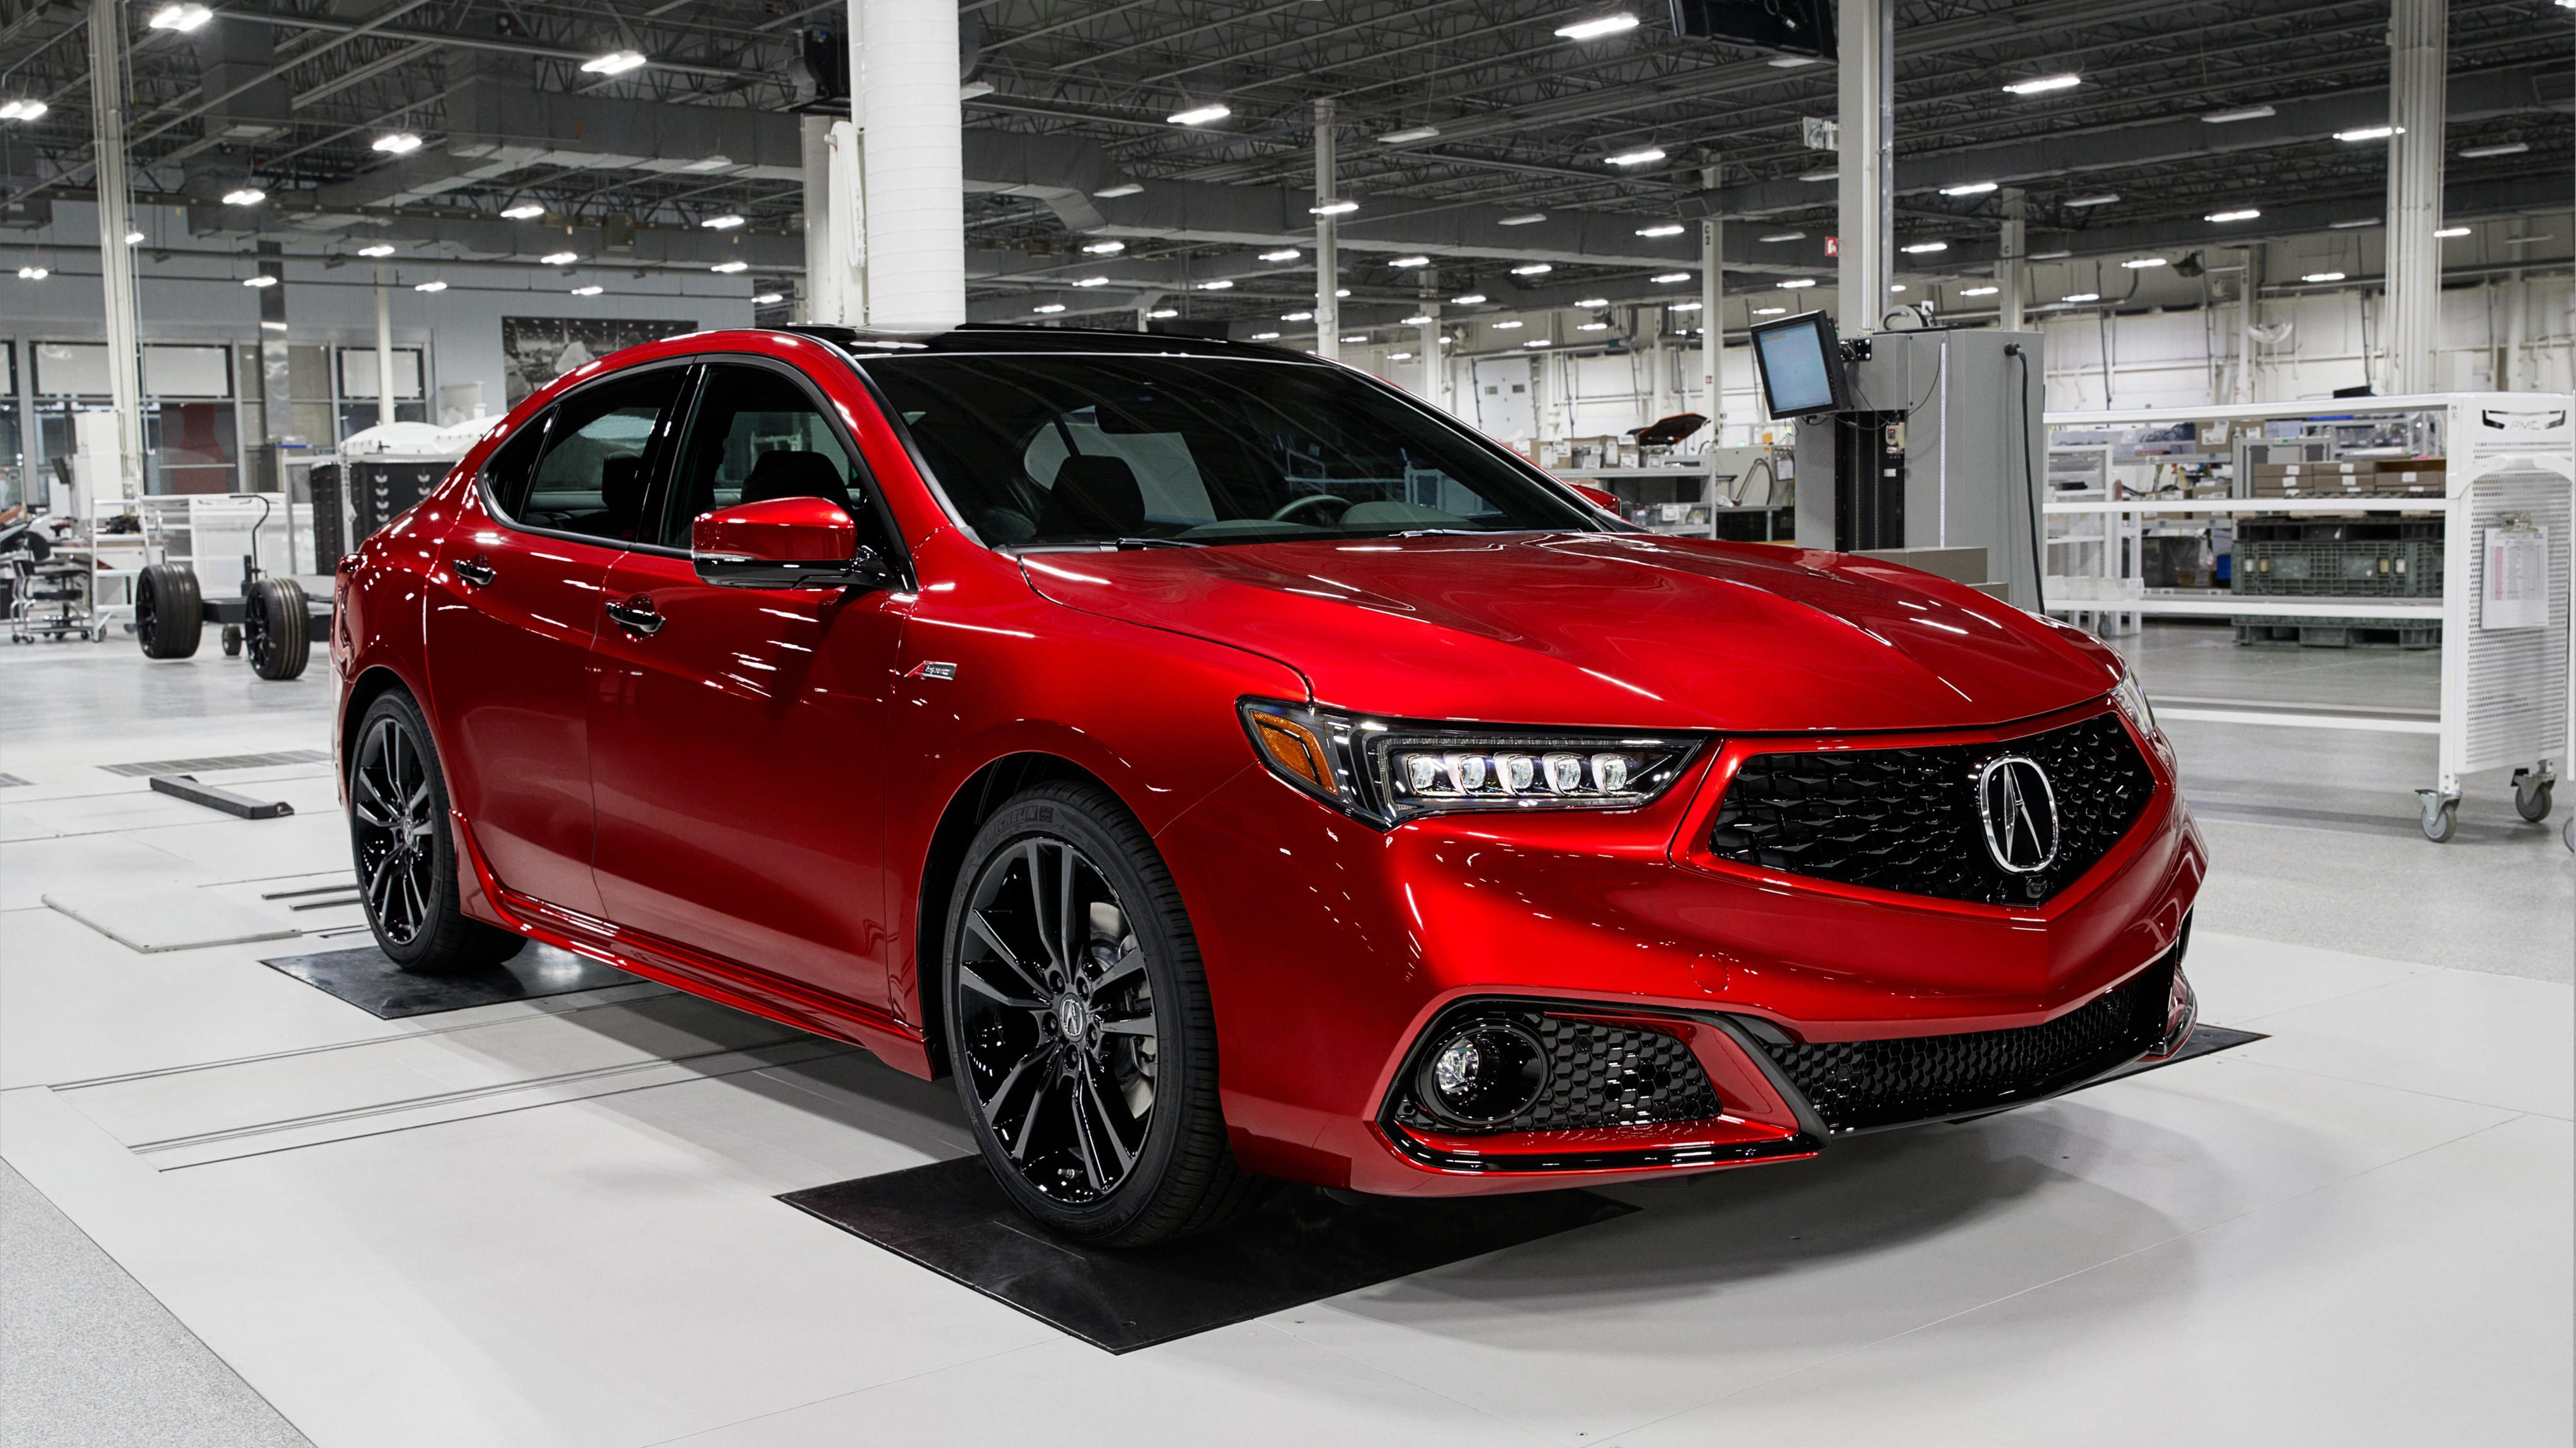 Acura Tlx 2020 And More Type S Models Will Follow As Acura Has Confirmed That Multiple 2020 Tlx Is Here With A New Variant Acura Sedan Acura Cars Acura Tlx